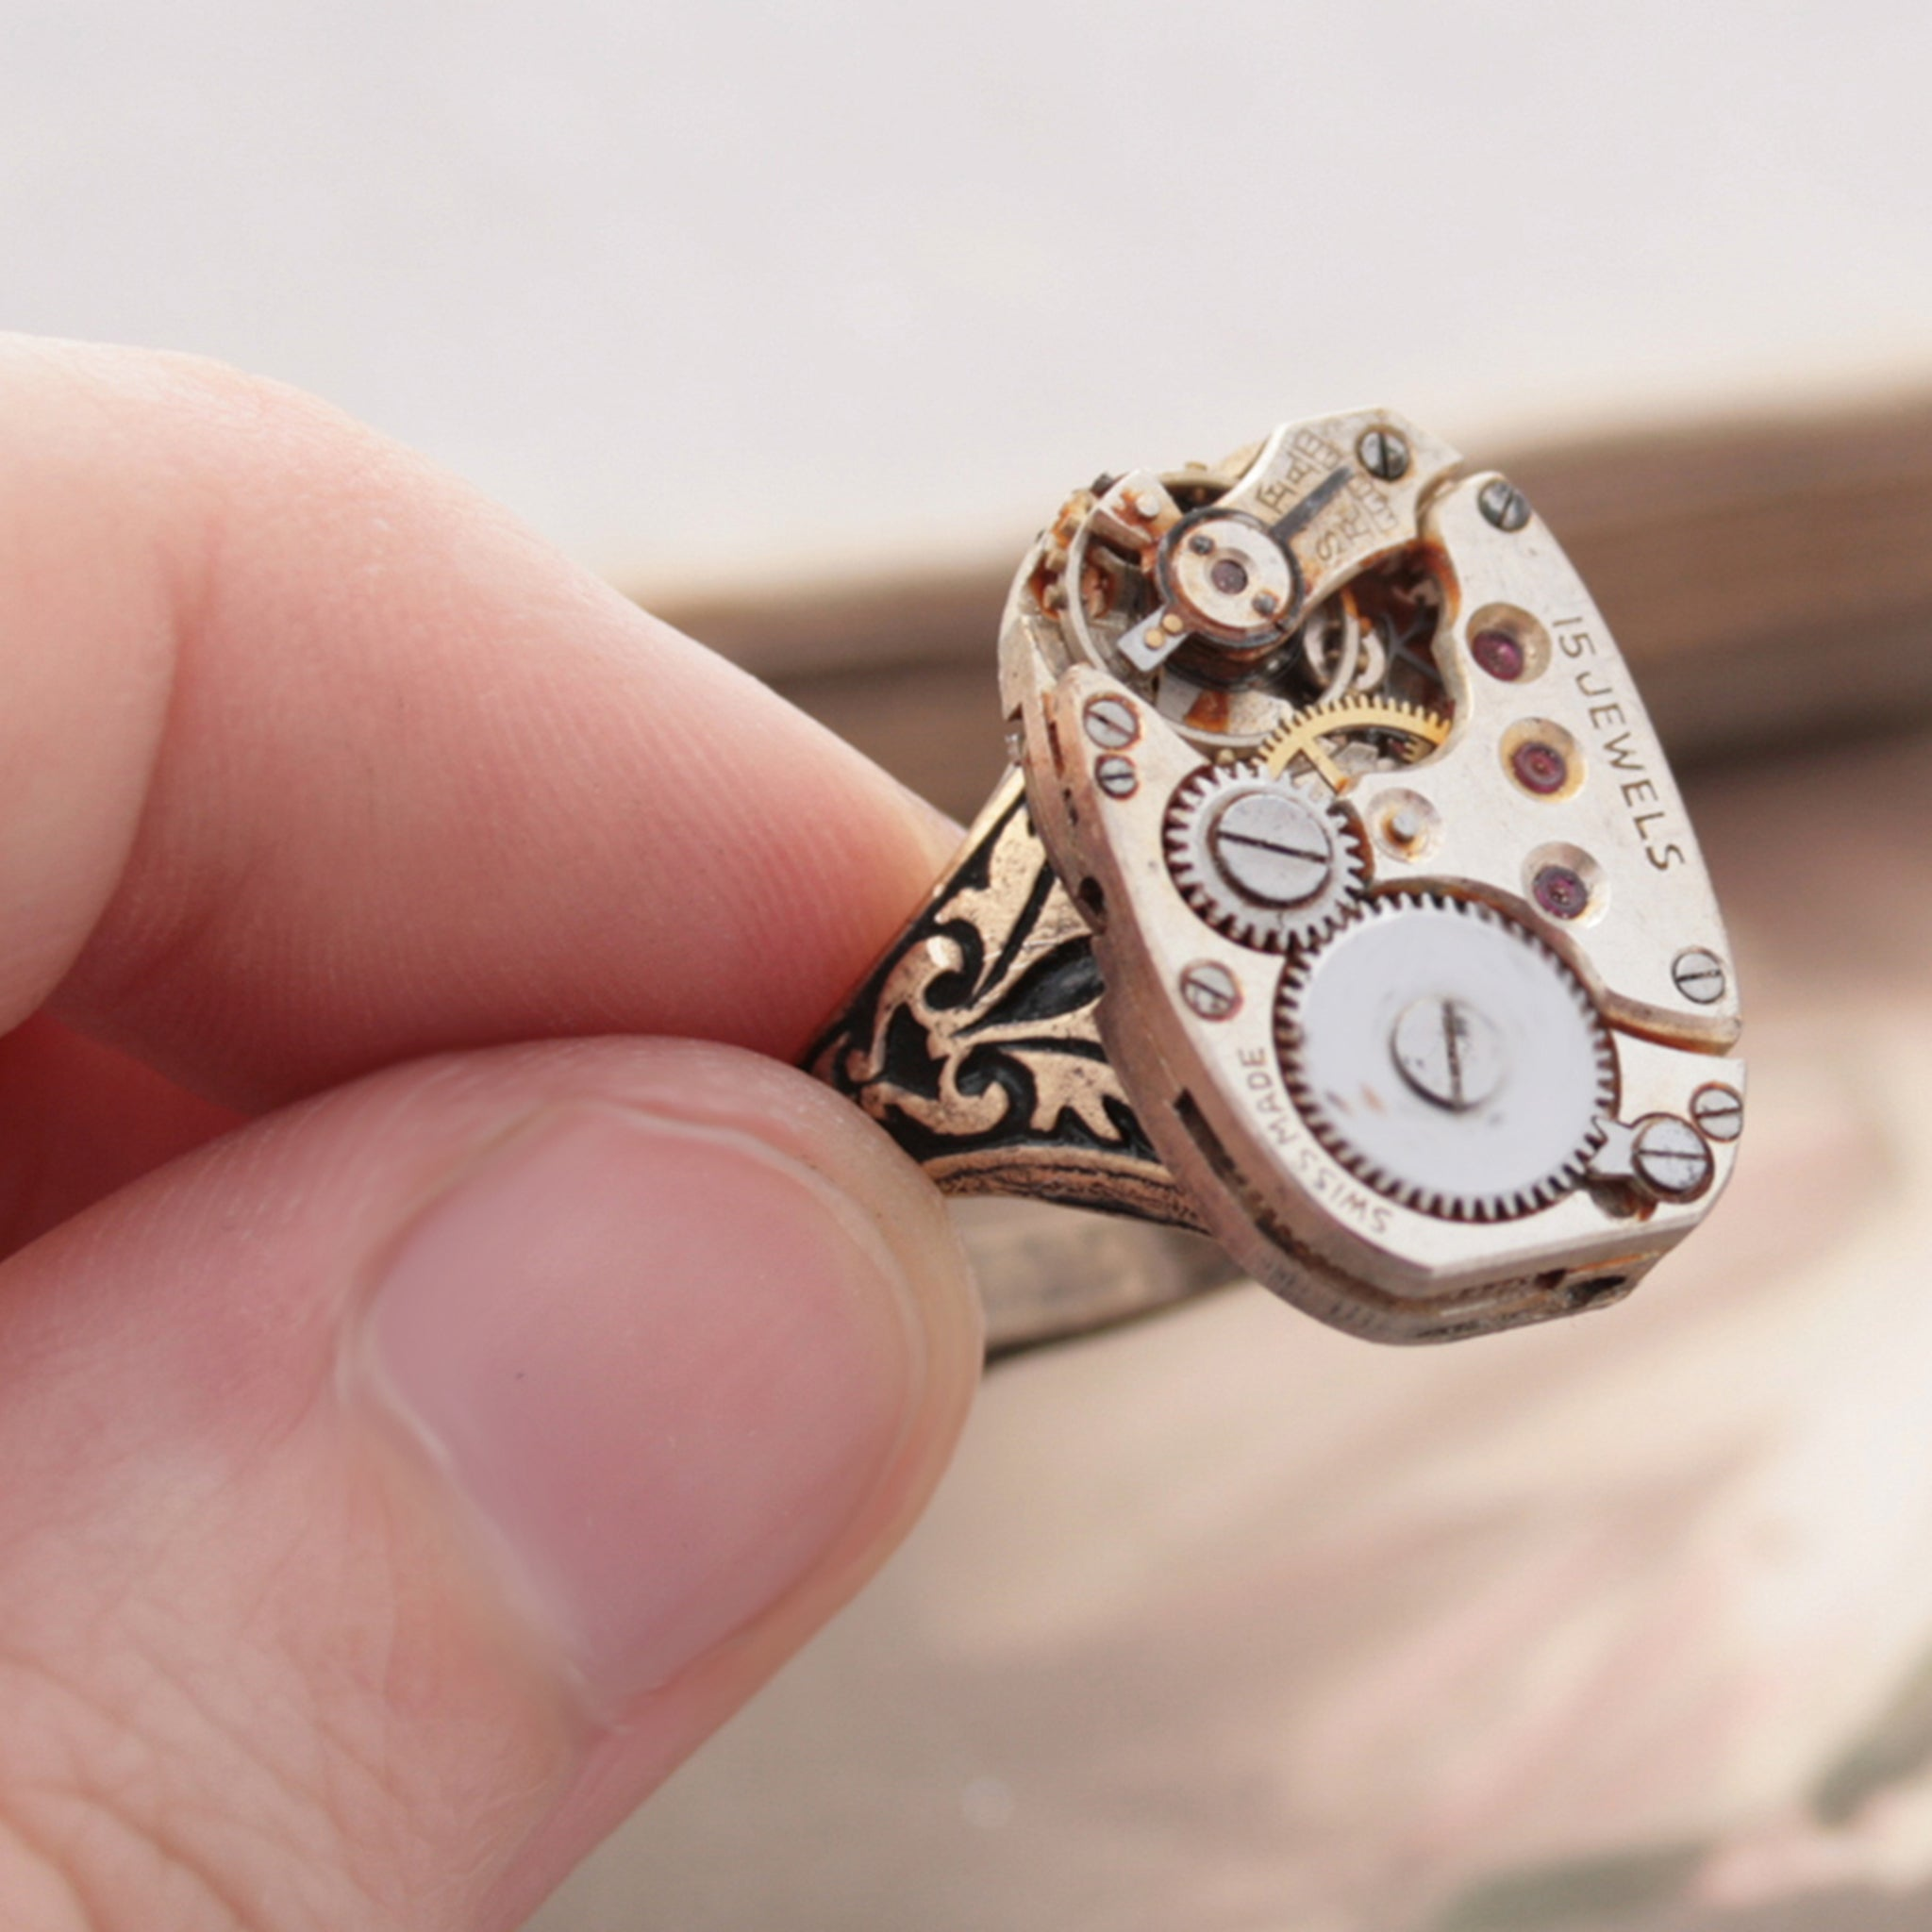 Old Gold Steampunk Signet Ring made of Antique Watch mechanism